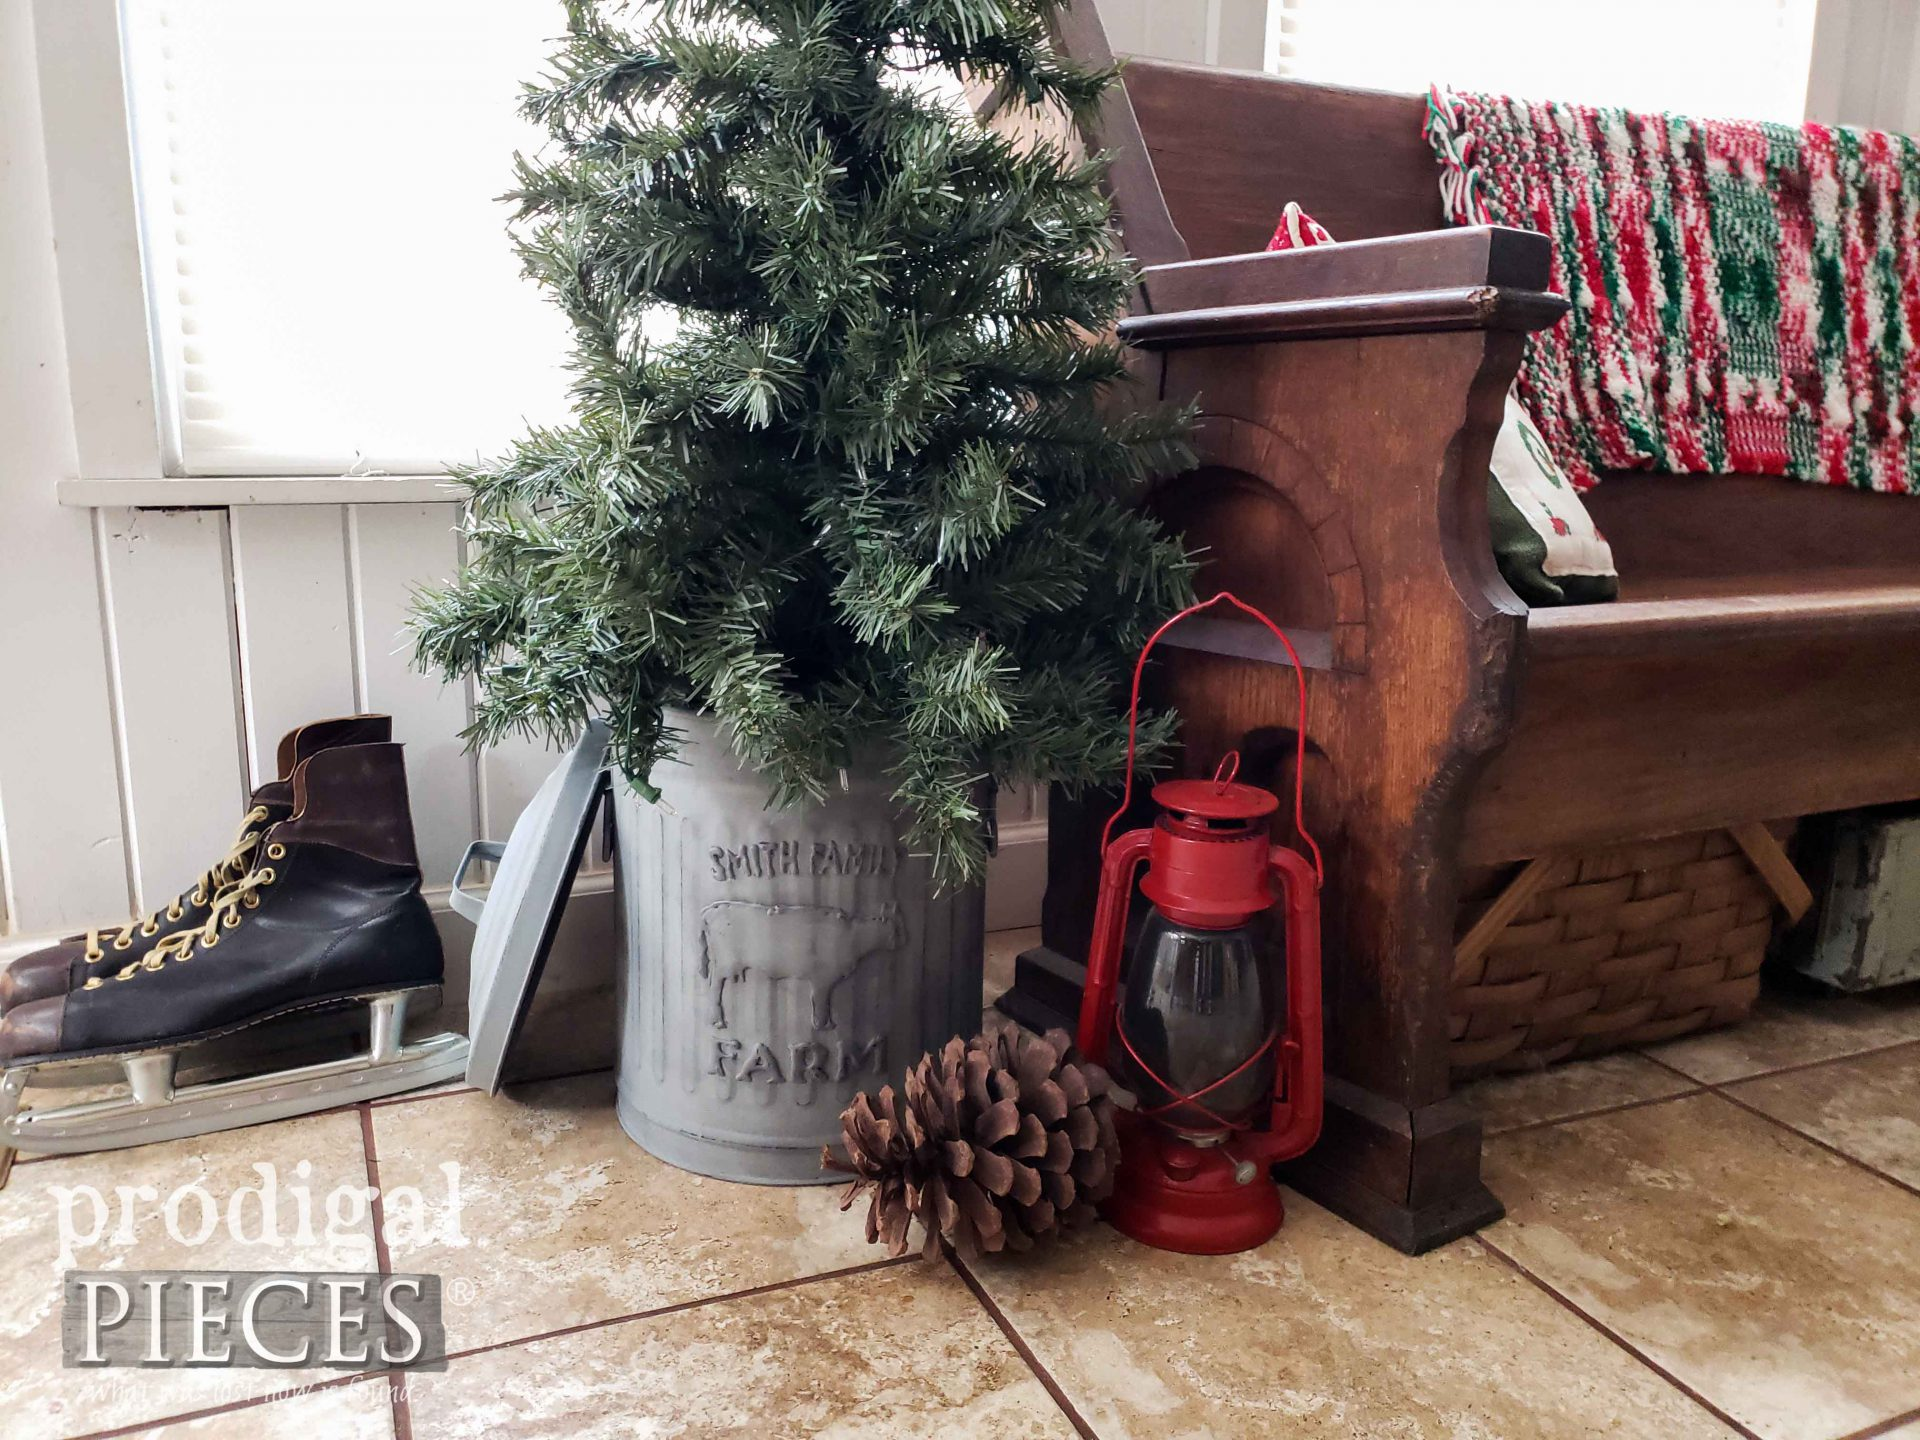 Rustic Farmhouse Christmas Tree in Embossed Trash Can by Larissa of Prodigal Pieces | prodigalpieces.com #prodigalpieces #home #diy #homedecor #farmhouse #christmas